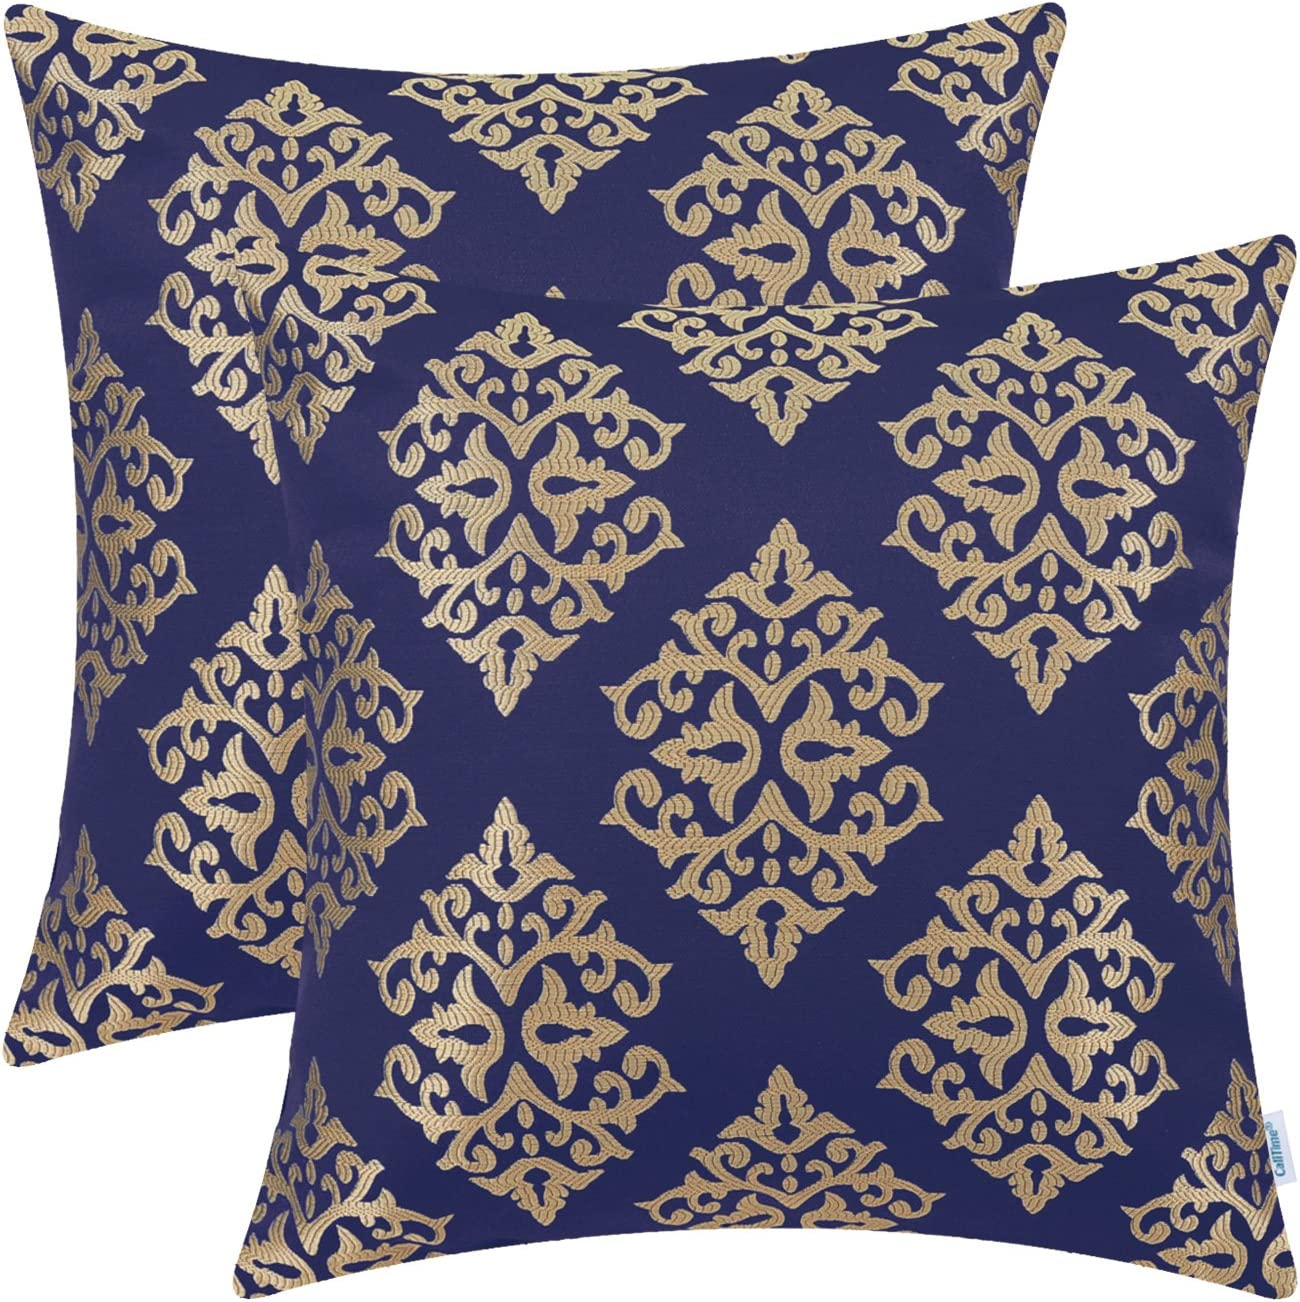 10 Colors Elegant Both Sides Damask Velvet Deco Throw Pillow Case Cushion Cover